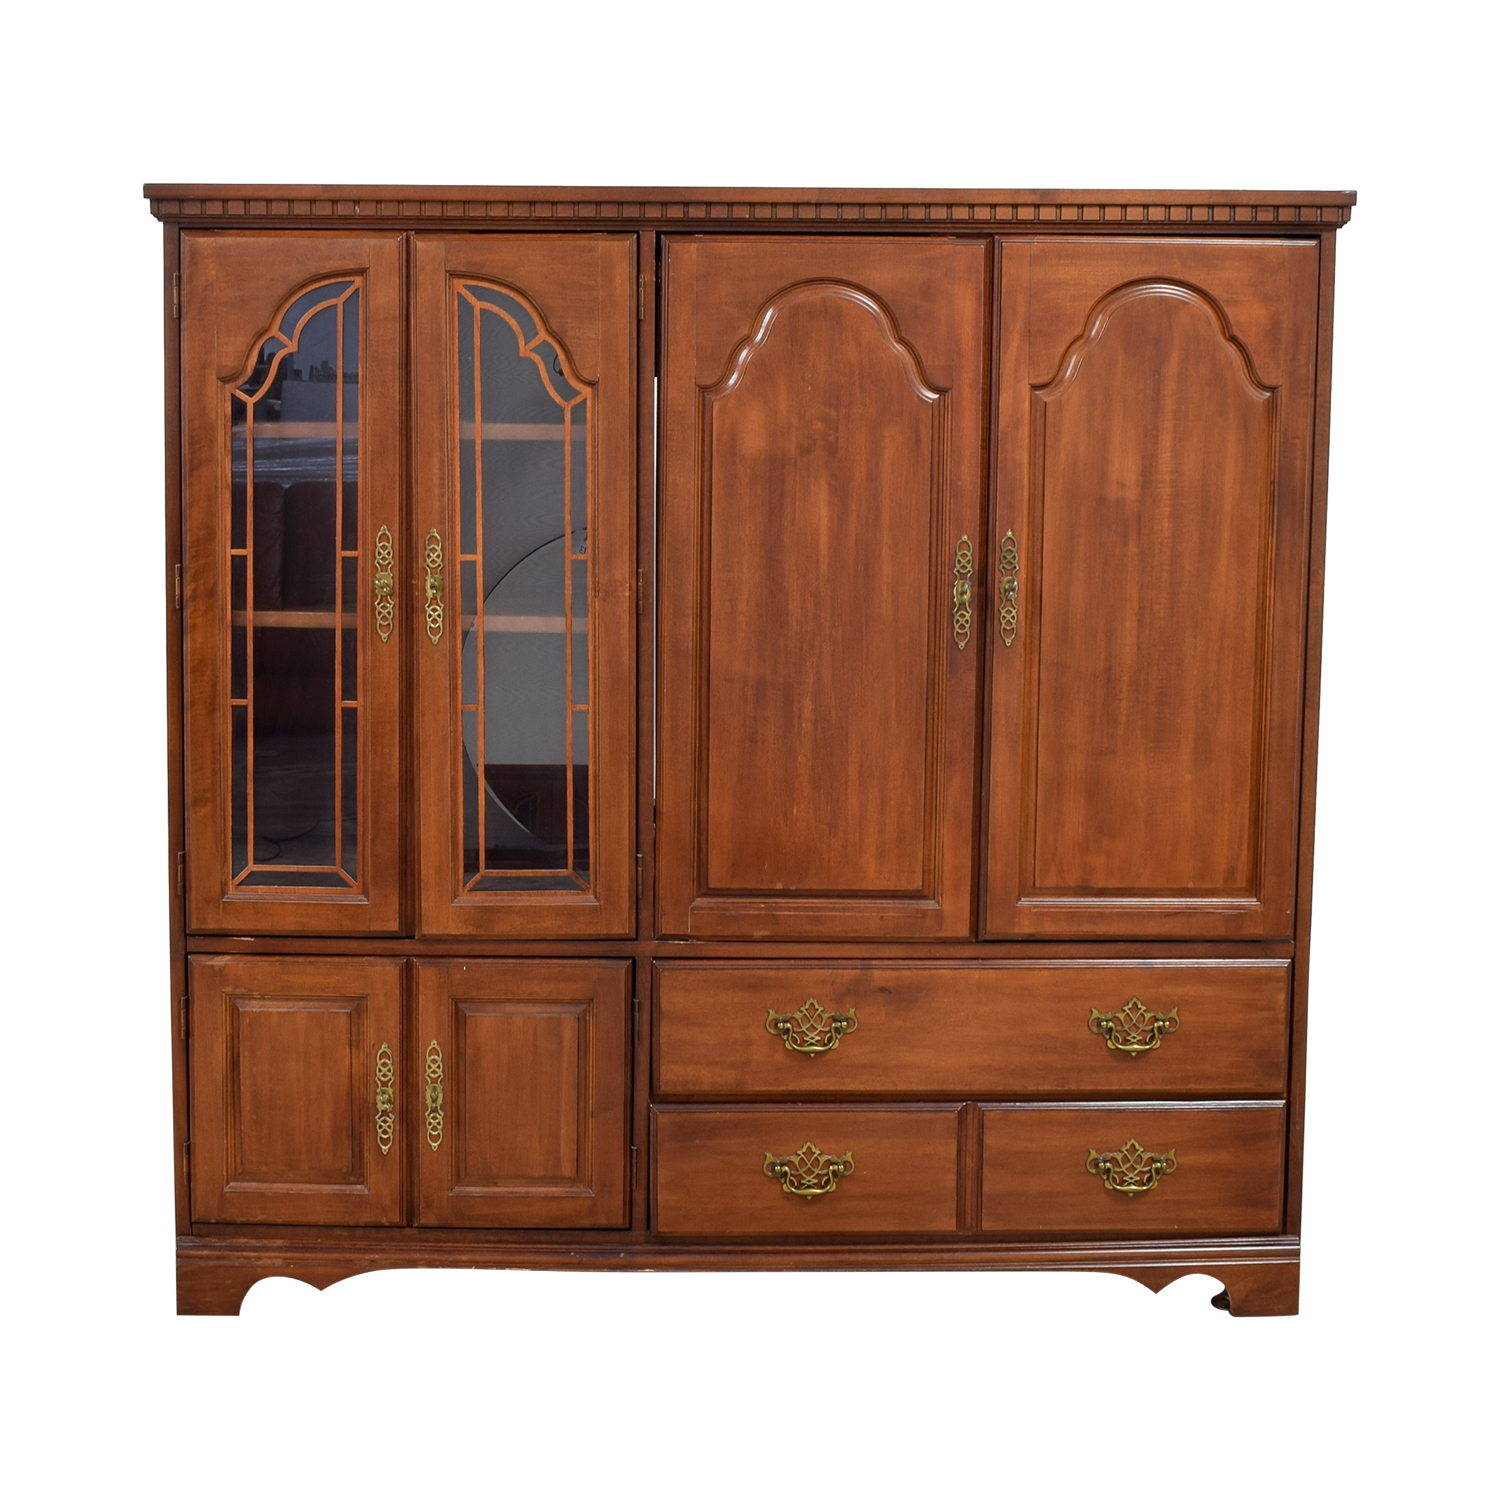 JC Penney JC Penney Wood Media Storage Cabinet nj